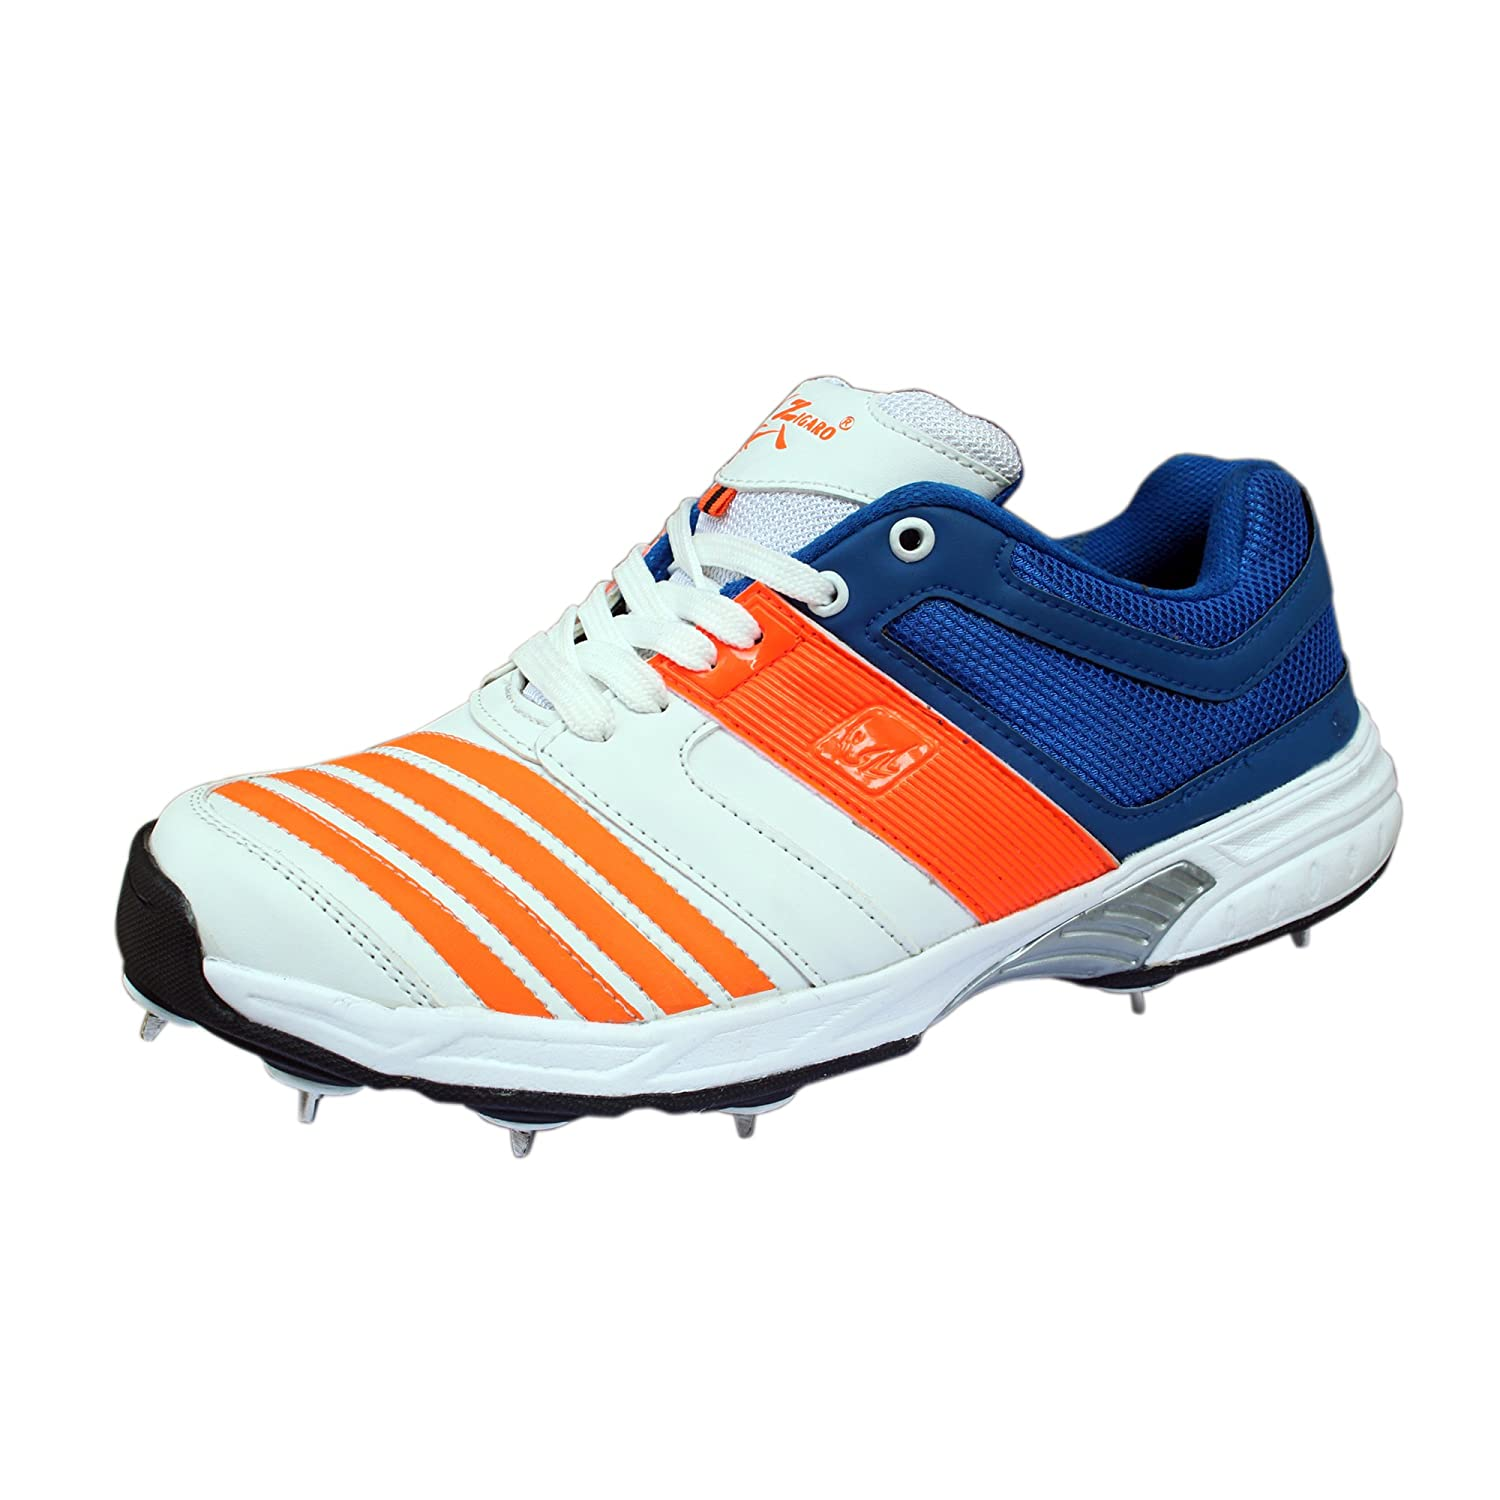 6a2c3a8c78e Cricket Shoes  Buy Cricket Shoes online at best prices in India ...